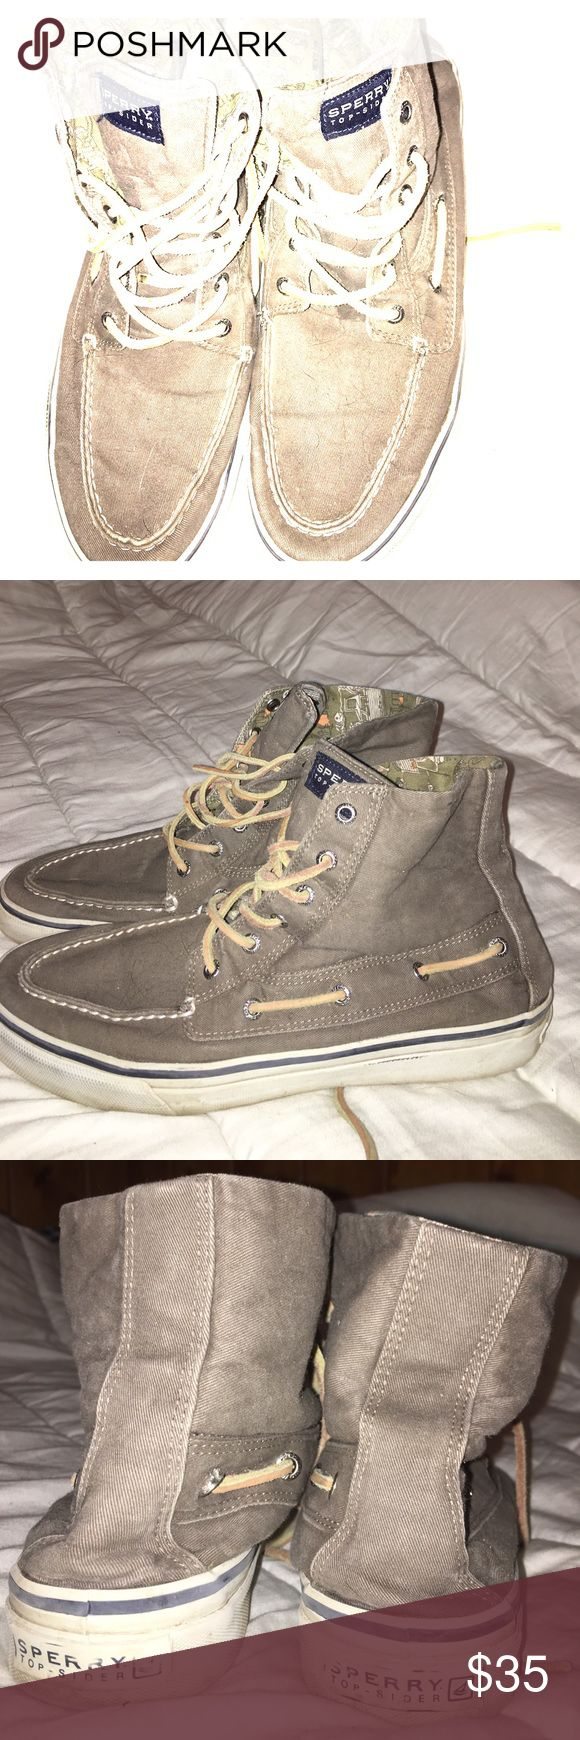 Sperry High Tops Men's Navy/Charcoal Cargo material sperry's Shoes Sneakers